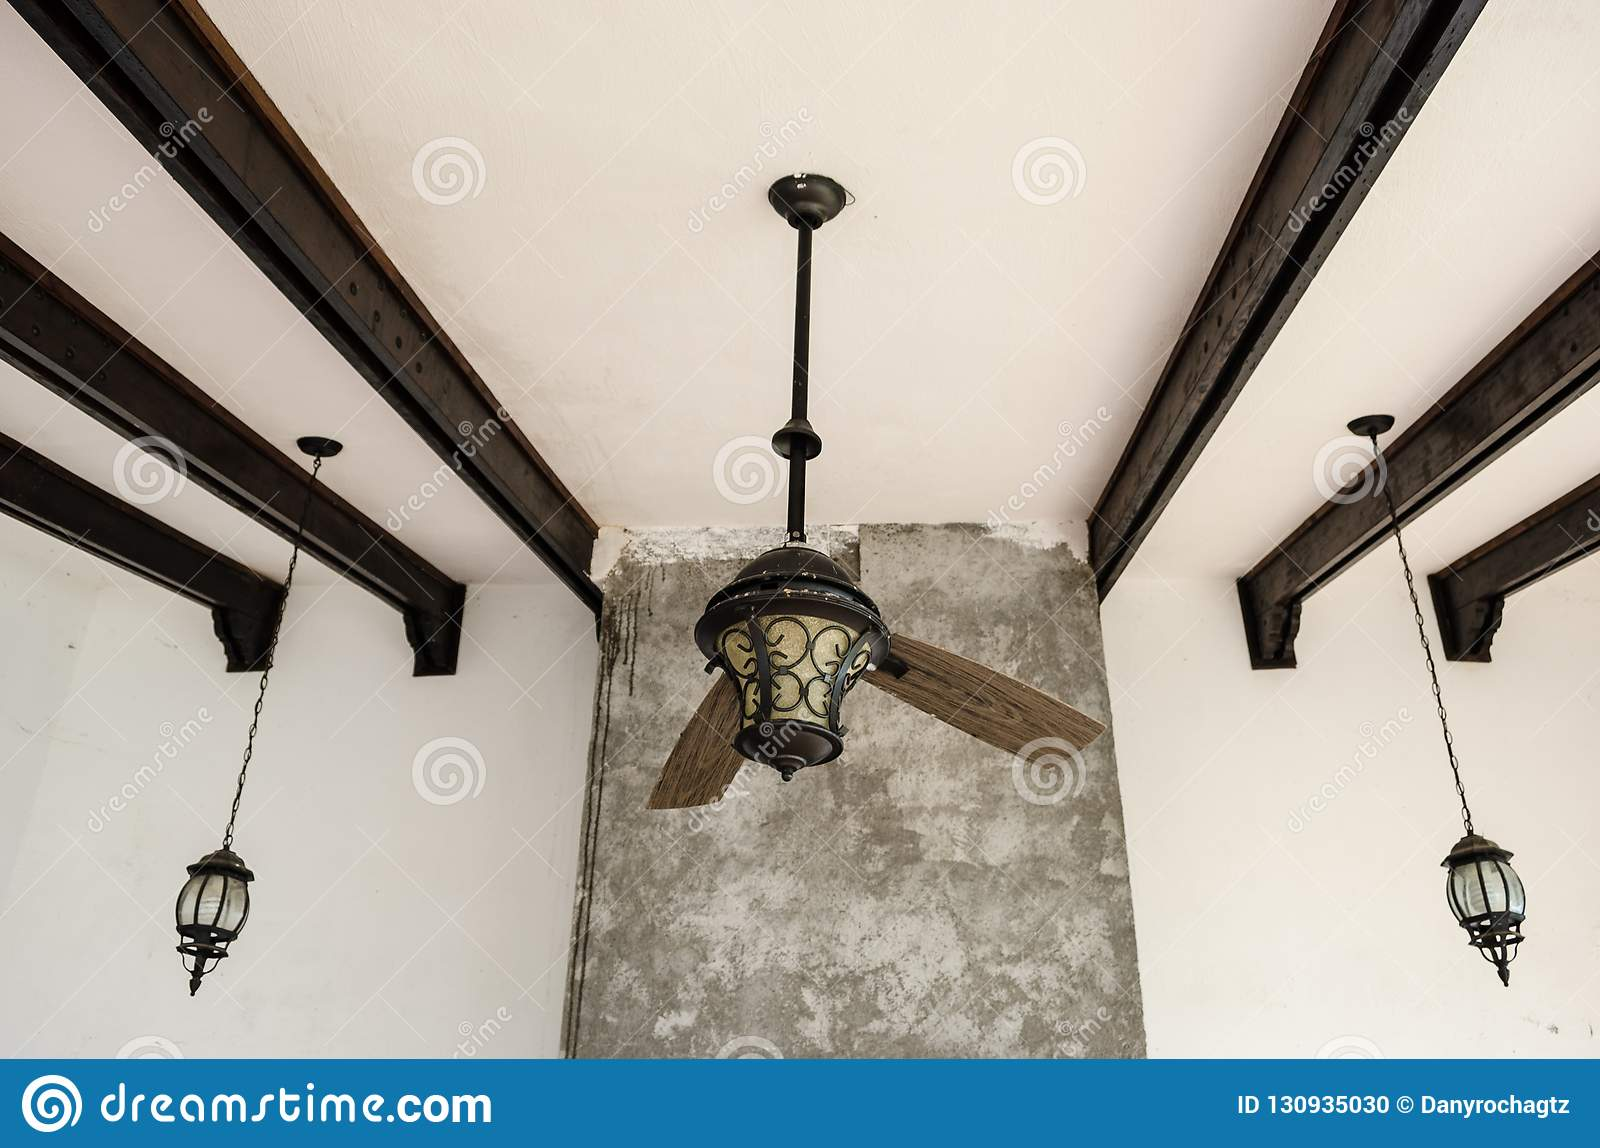 Shredded Ceiling Fan Two Blades Of A Broken Fan Wooden Bars On The Roof Stock Photo Image Of Background Blade 130935030